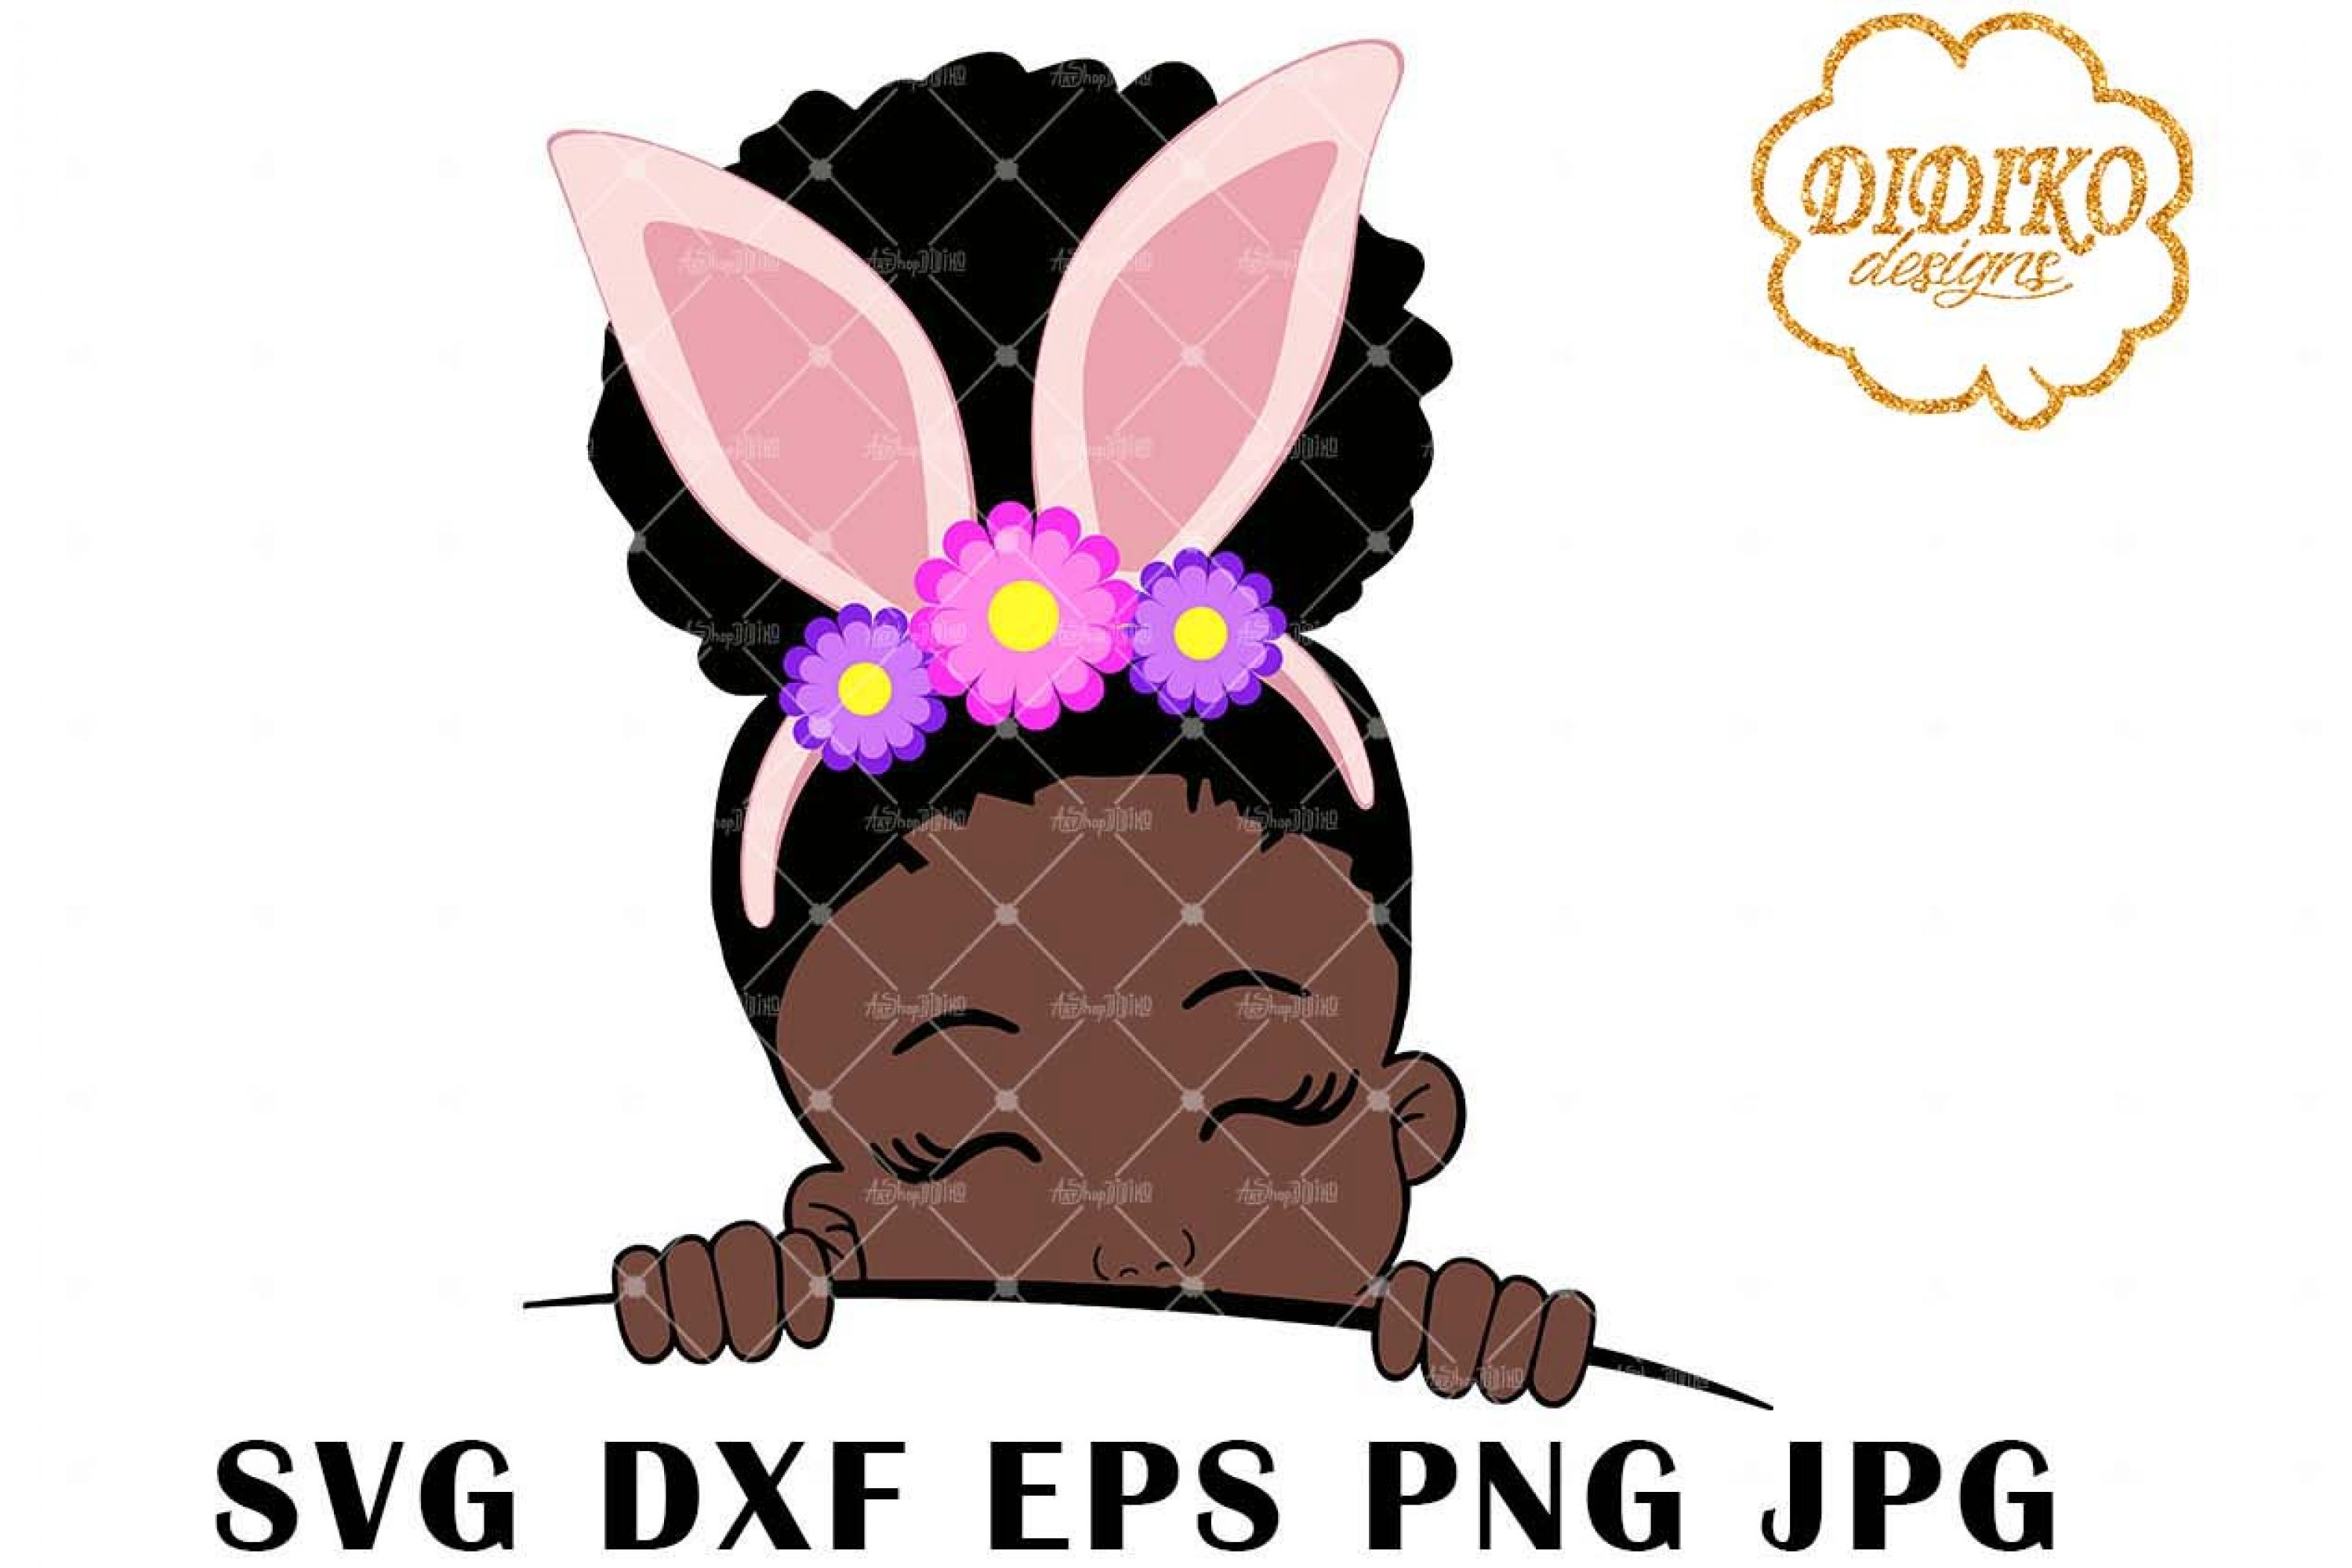 Afro Easter Girl Peek A Boo 2 SVG, Afro Puff SVG